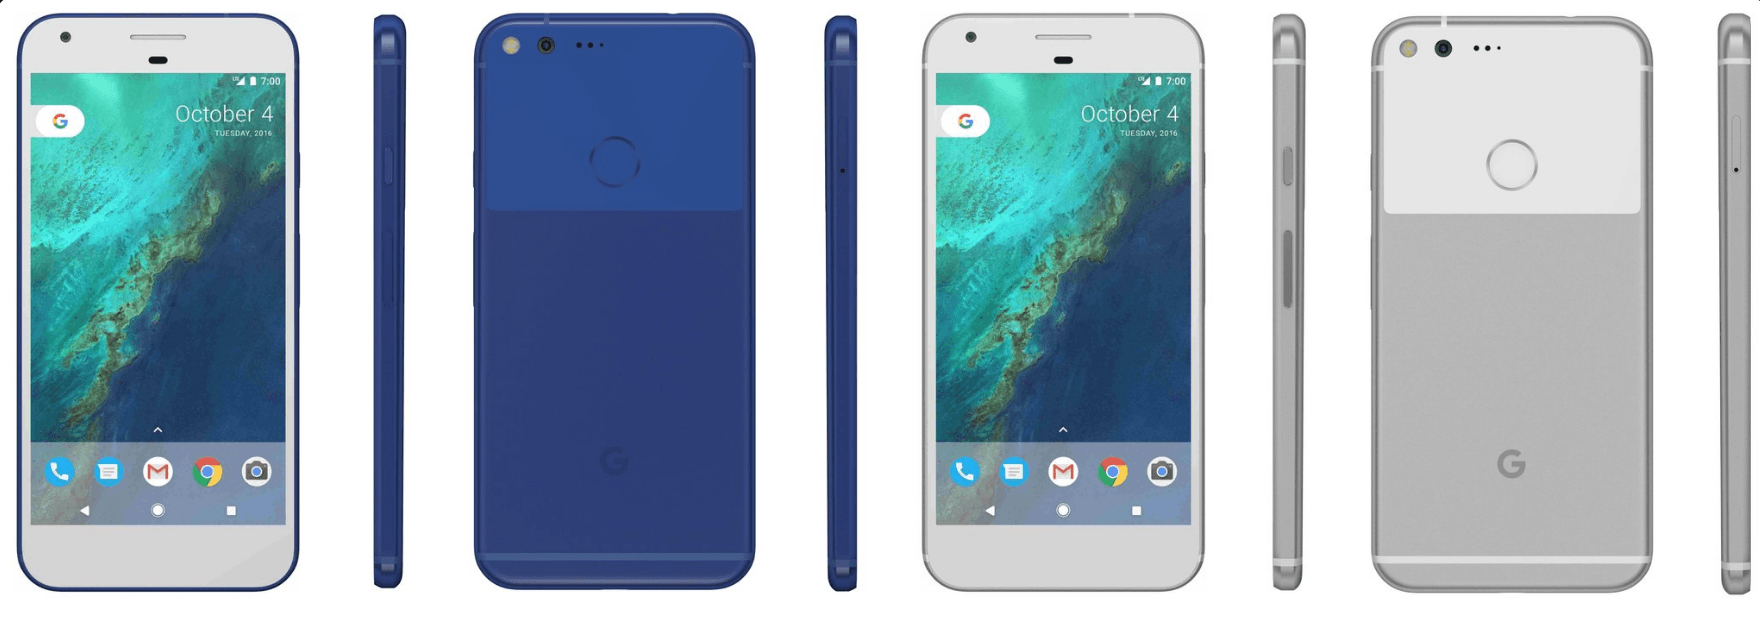 how googles pixel phones stack up against iphone 7 cult